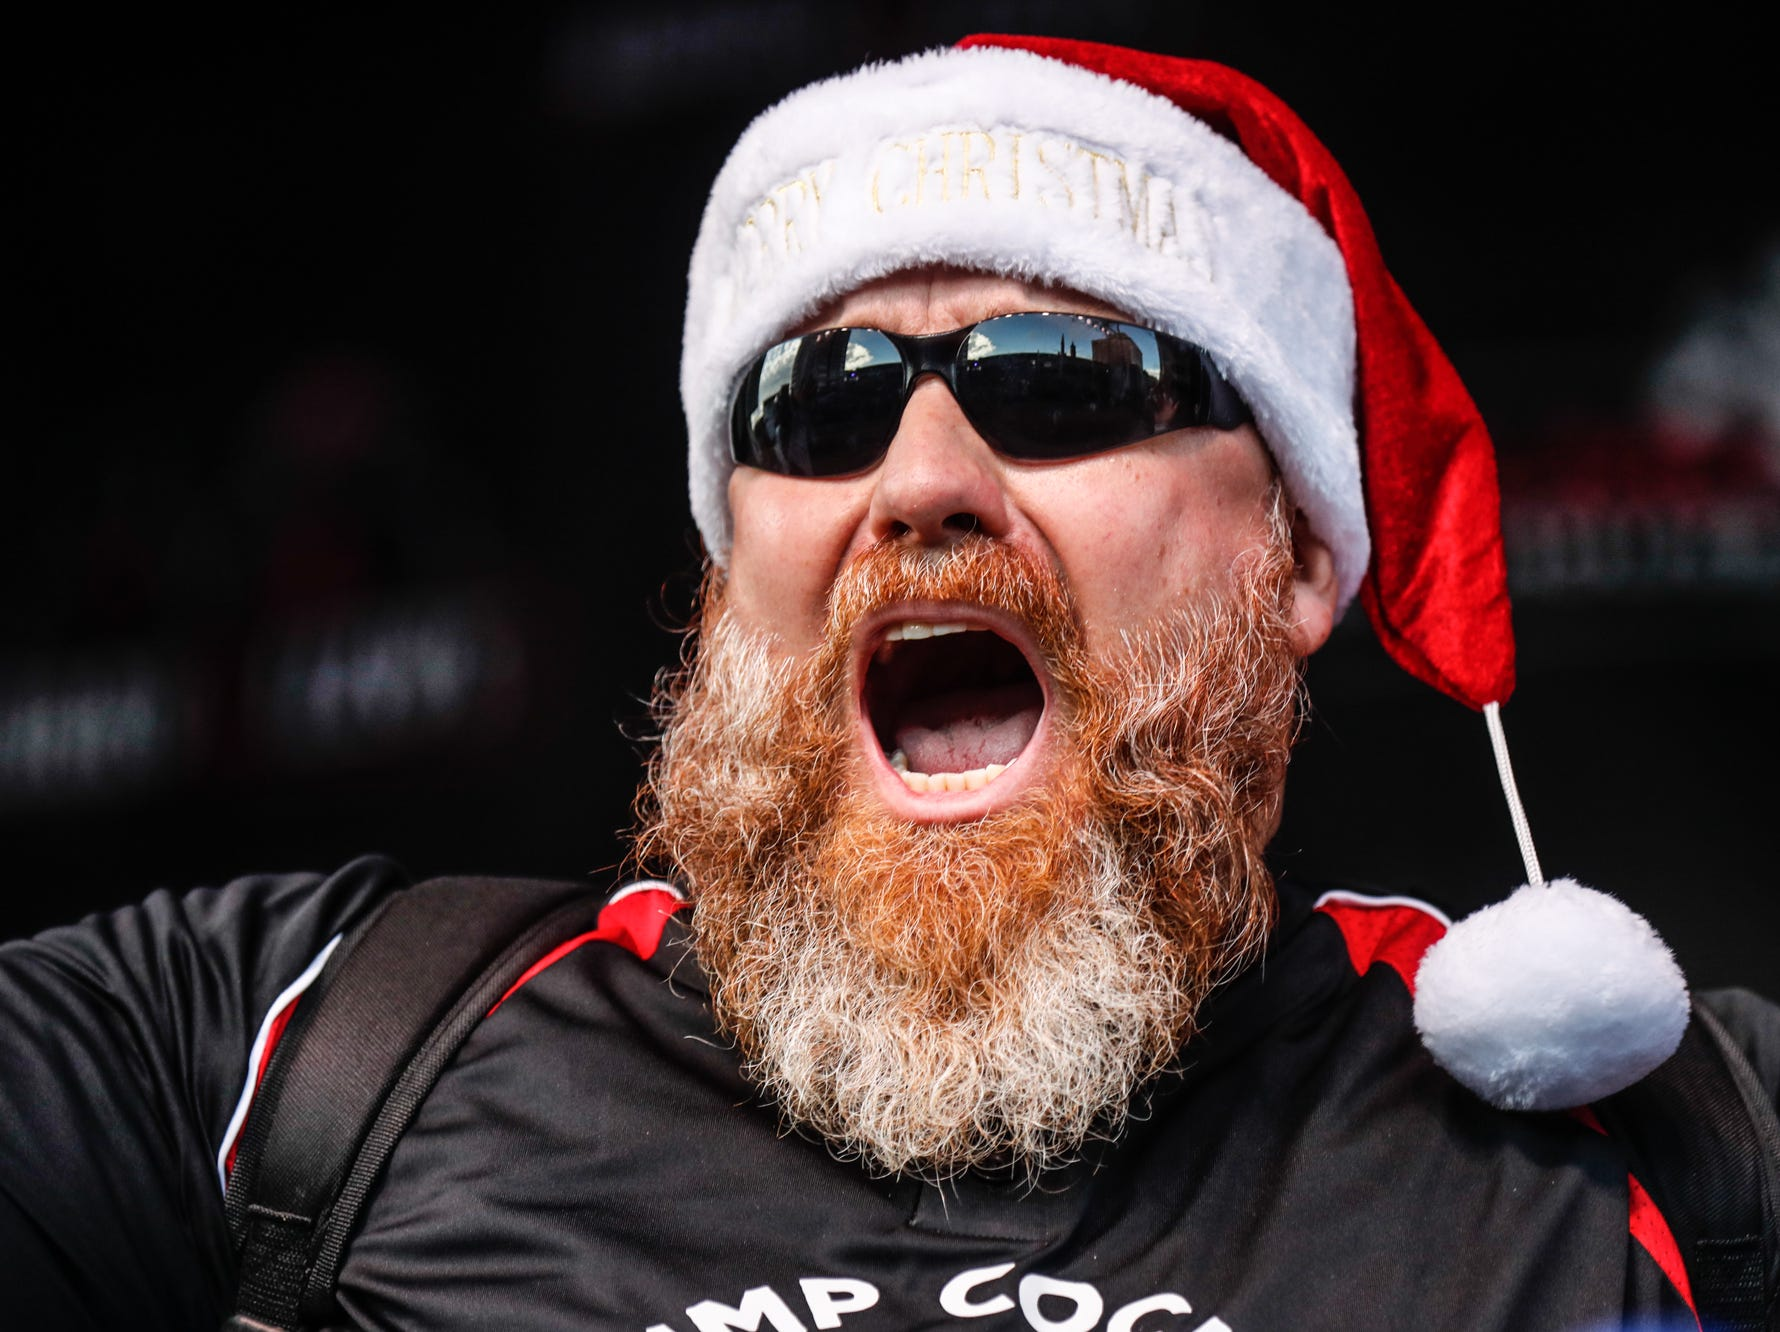 Major League Eater, Matthew Raible takes the stage, during the sixth annual World Famous St. Elmo Shrimp Cocktail Eating Championship, held during the Meijer Tailgate Party on Georgia St. in Indianapolis on Saturday, Dec. 1, 2018.